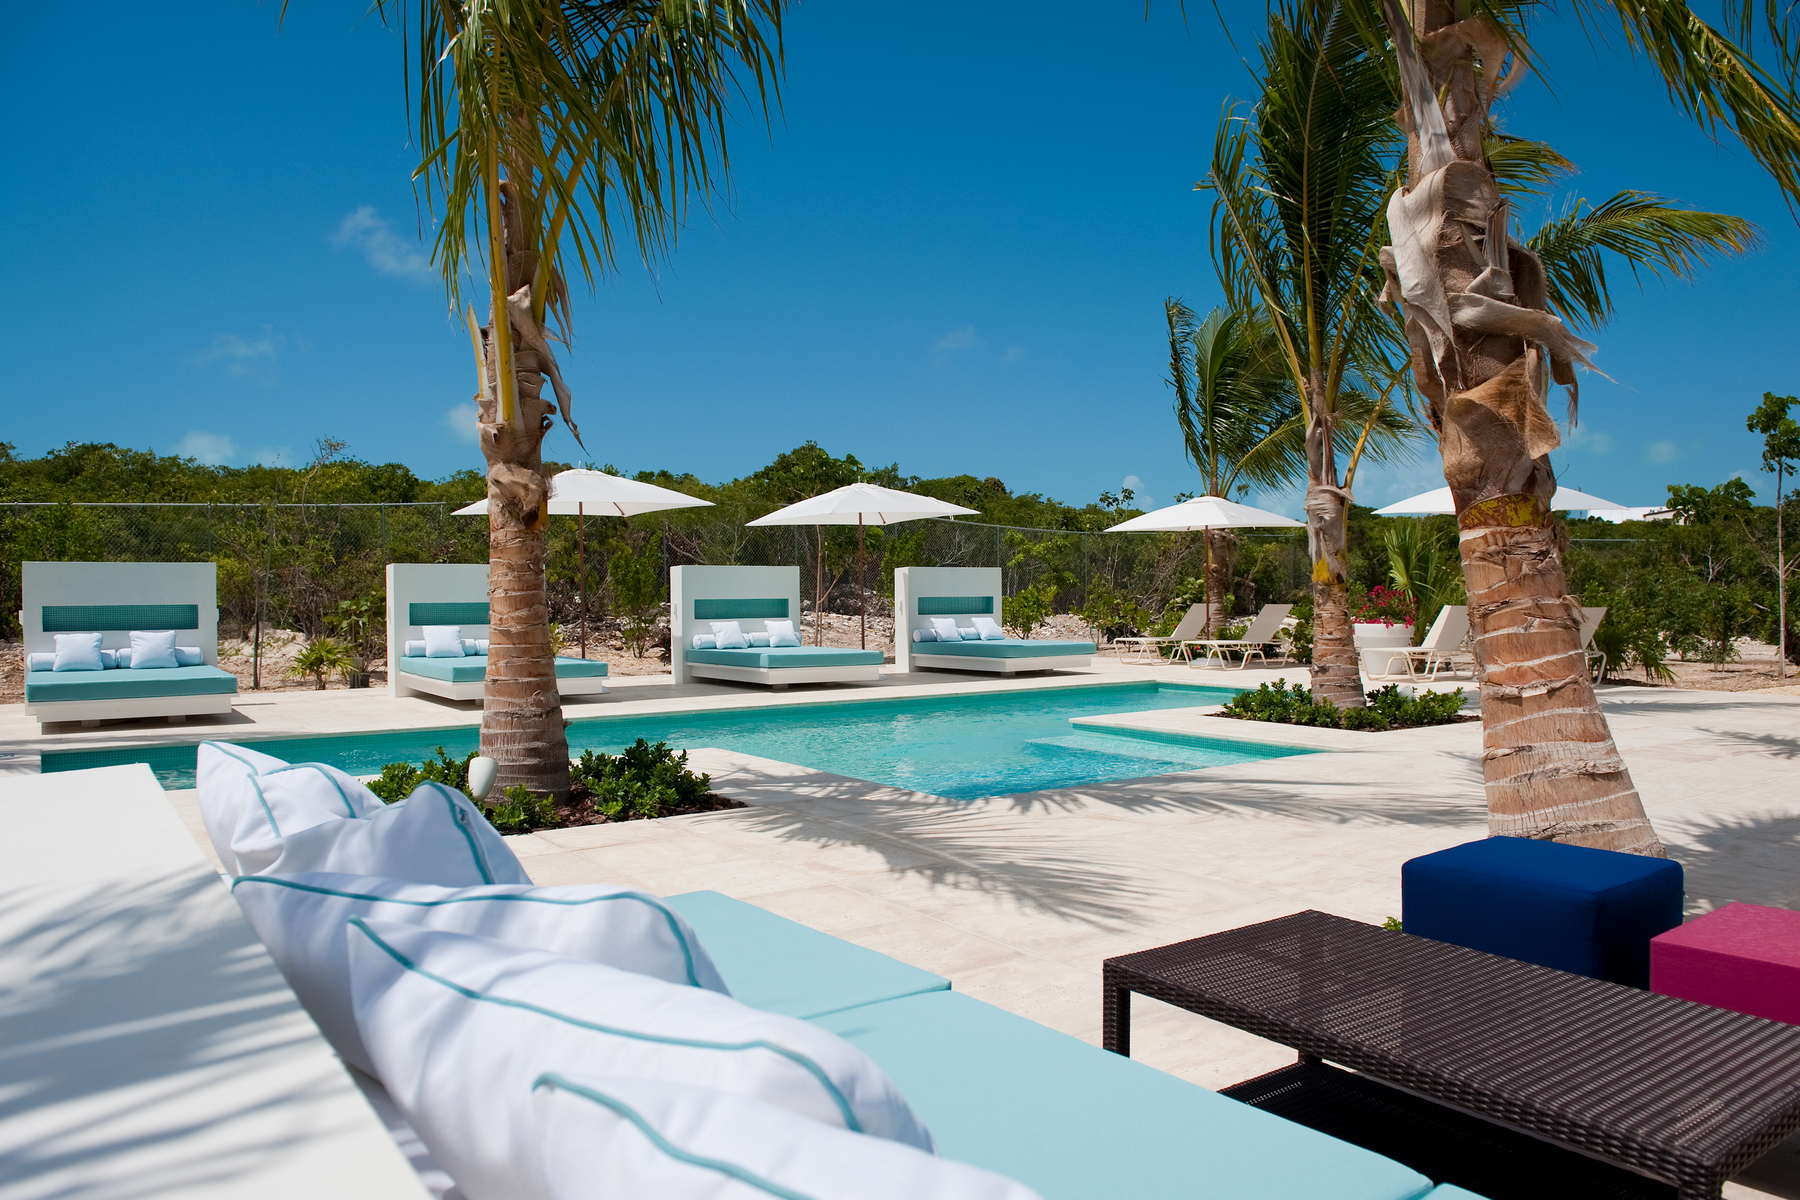 Additional photo for property listing at One Loft - Unit 29 One Loft Thompson Cove, Providenciales TKCA 1ZZ Turks And Caicos Islands